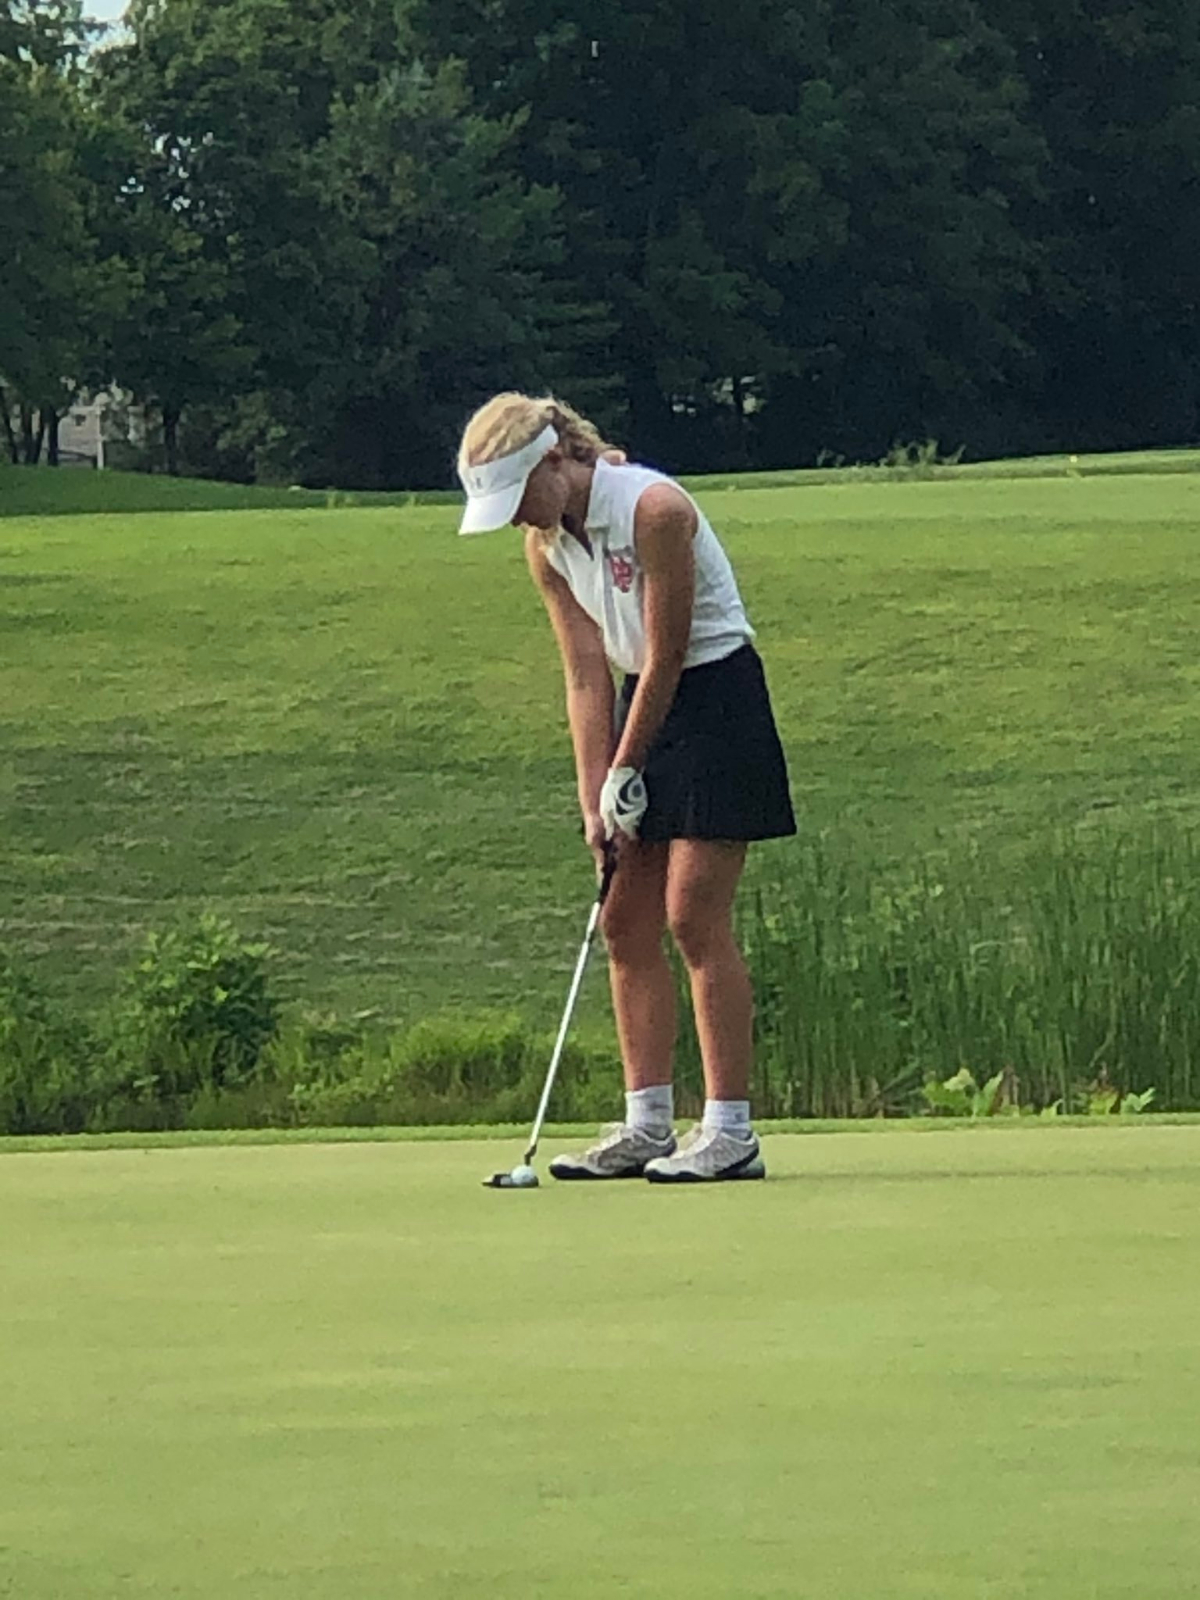 Golf shoots best score of year at Noblesville